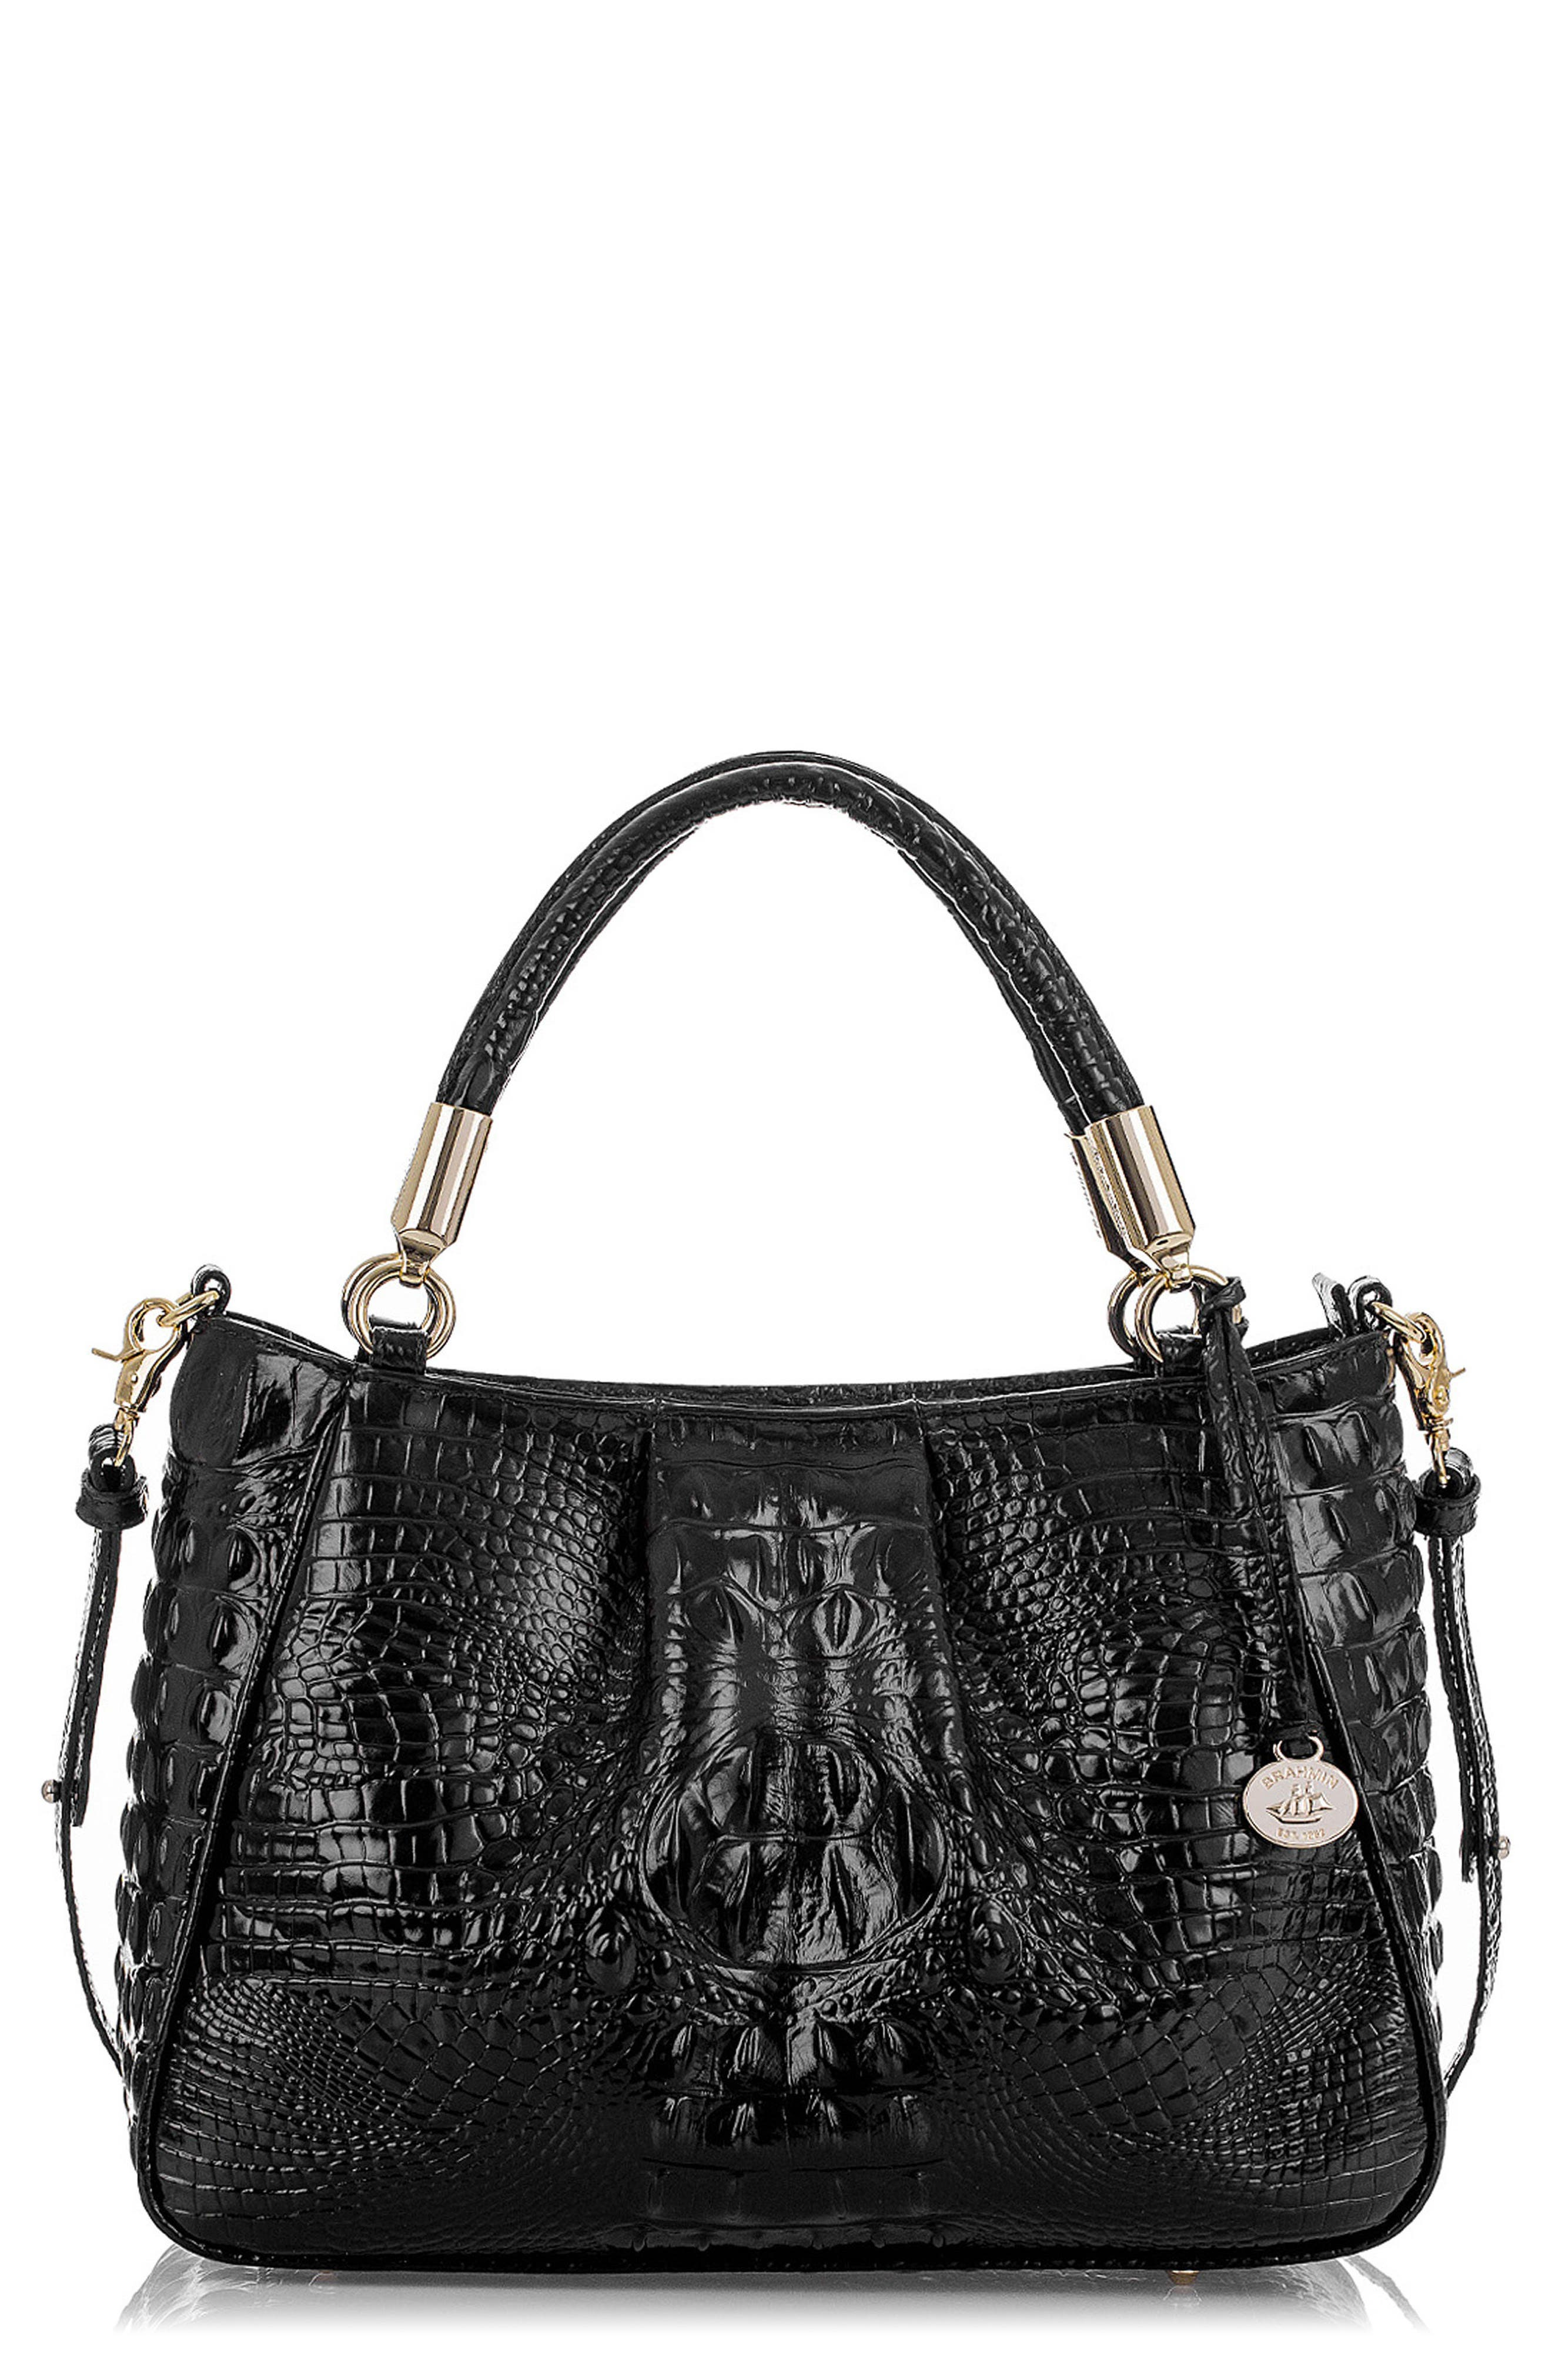 Ruby Croc Embossed Leather Satchel,                             Main thumbnail 1, color,                             001